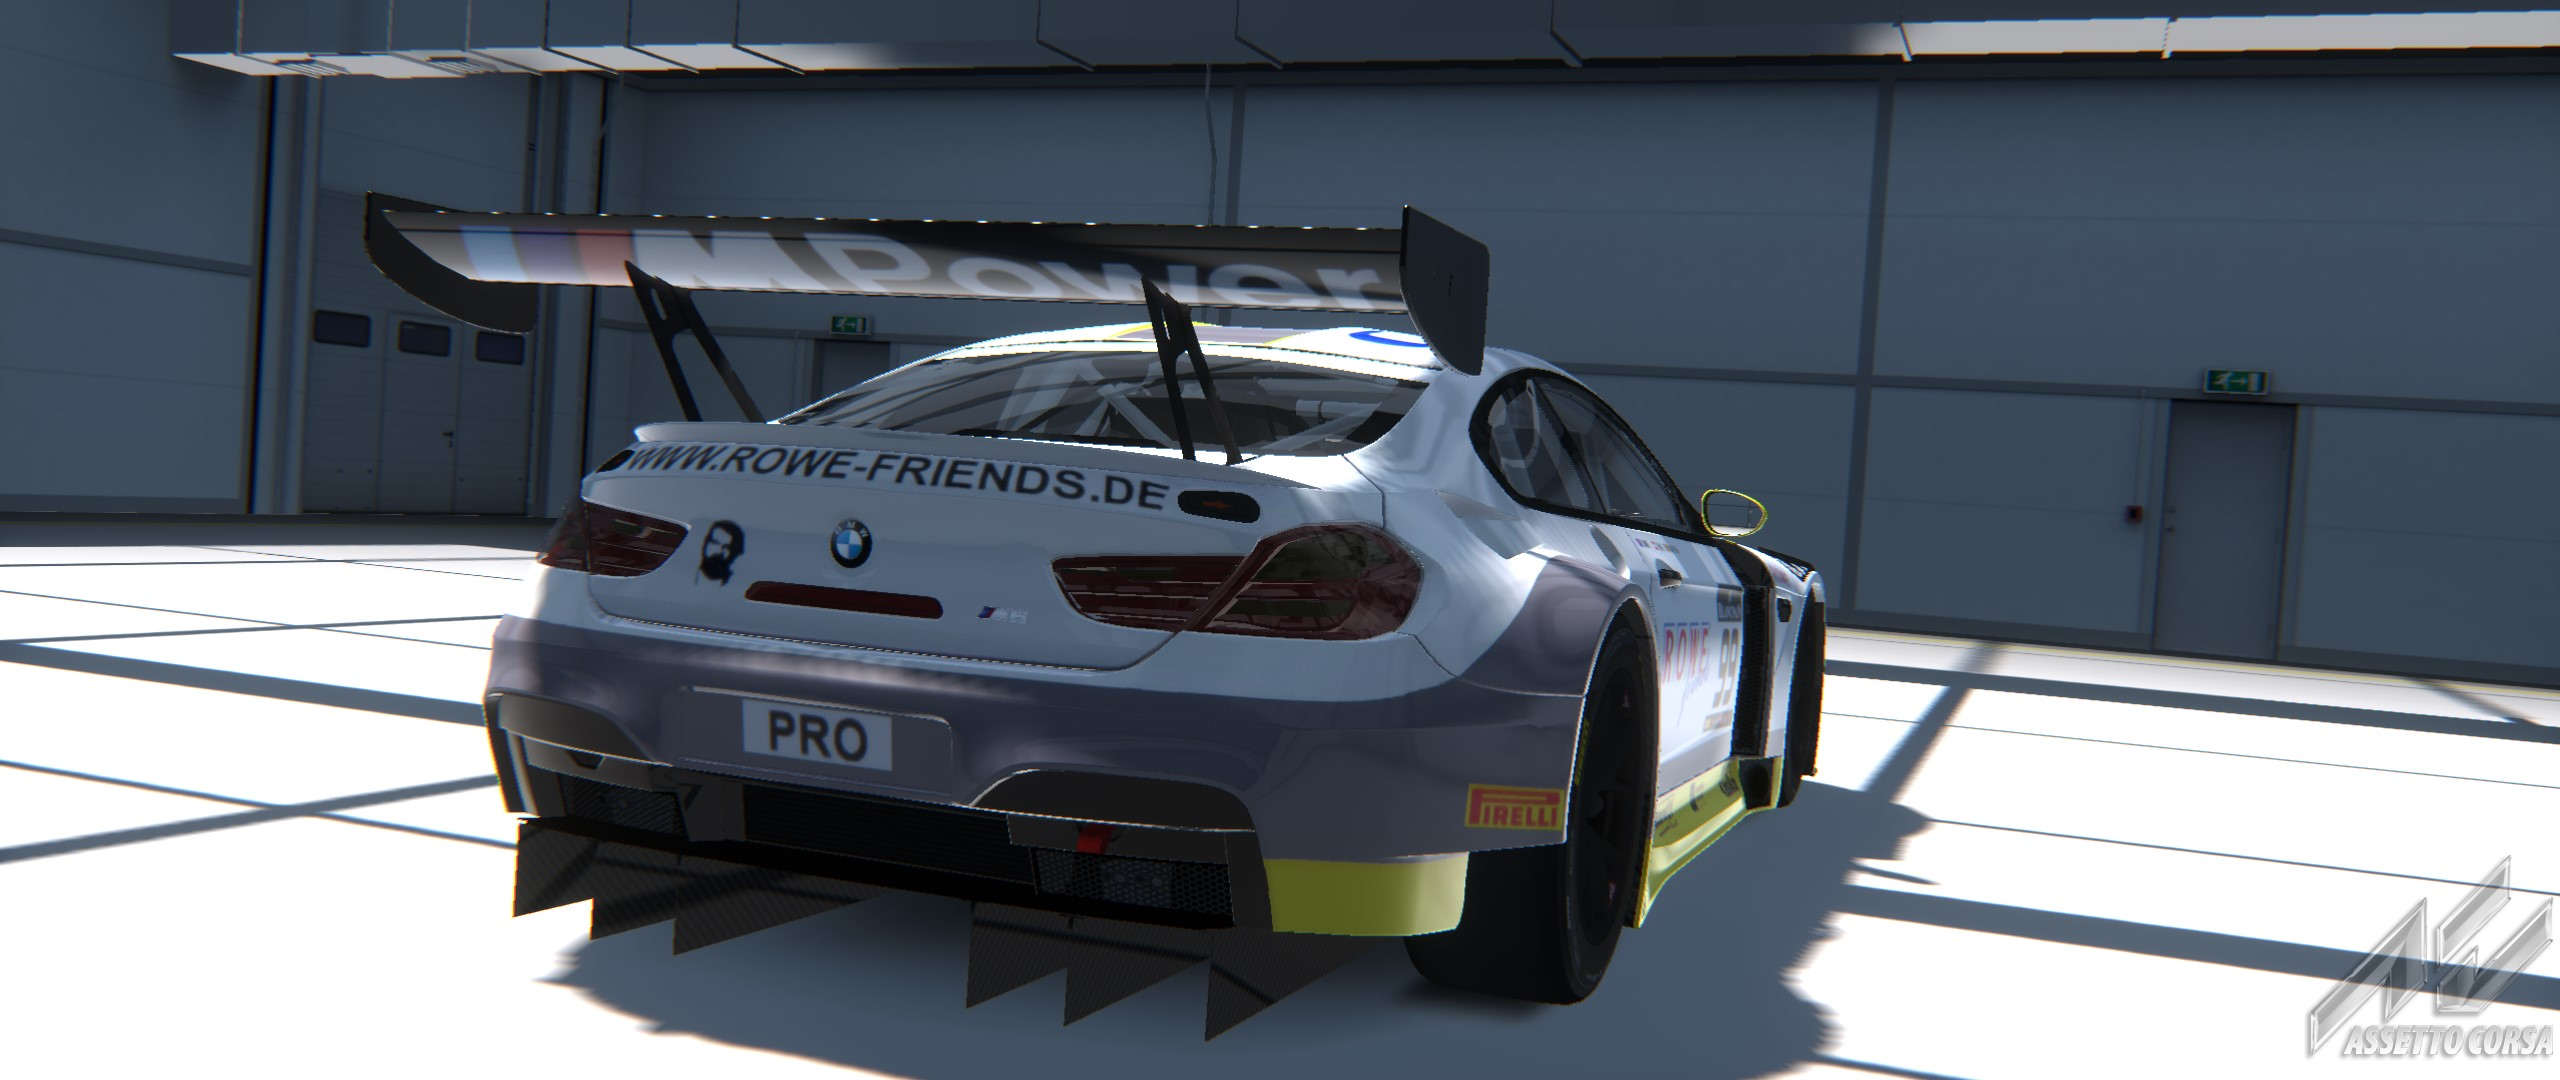 Showroom_bmw_m6_gt3_28-8-2016-20-47-53.jpg